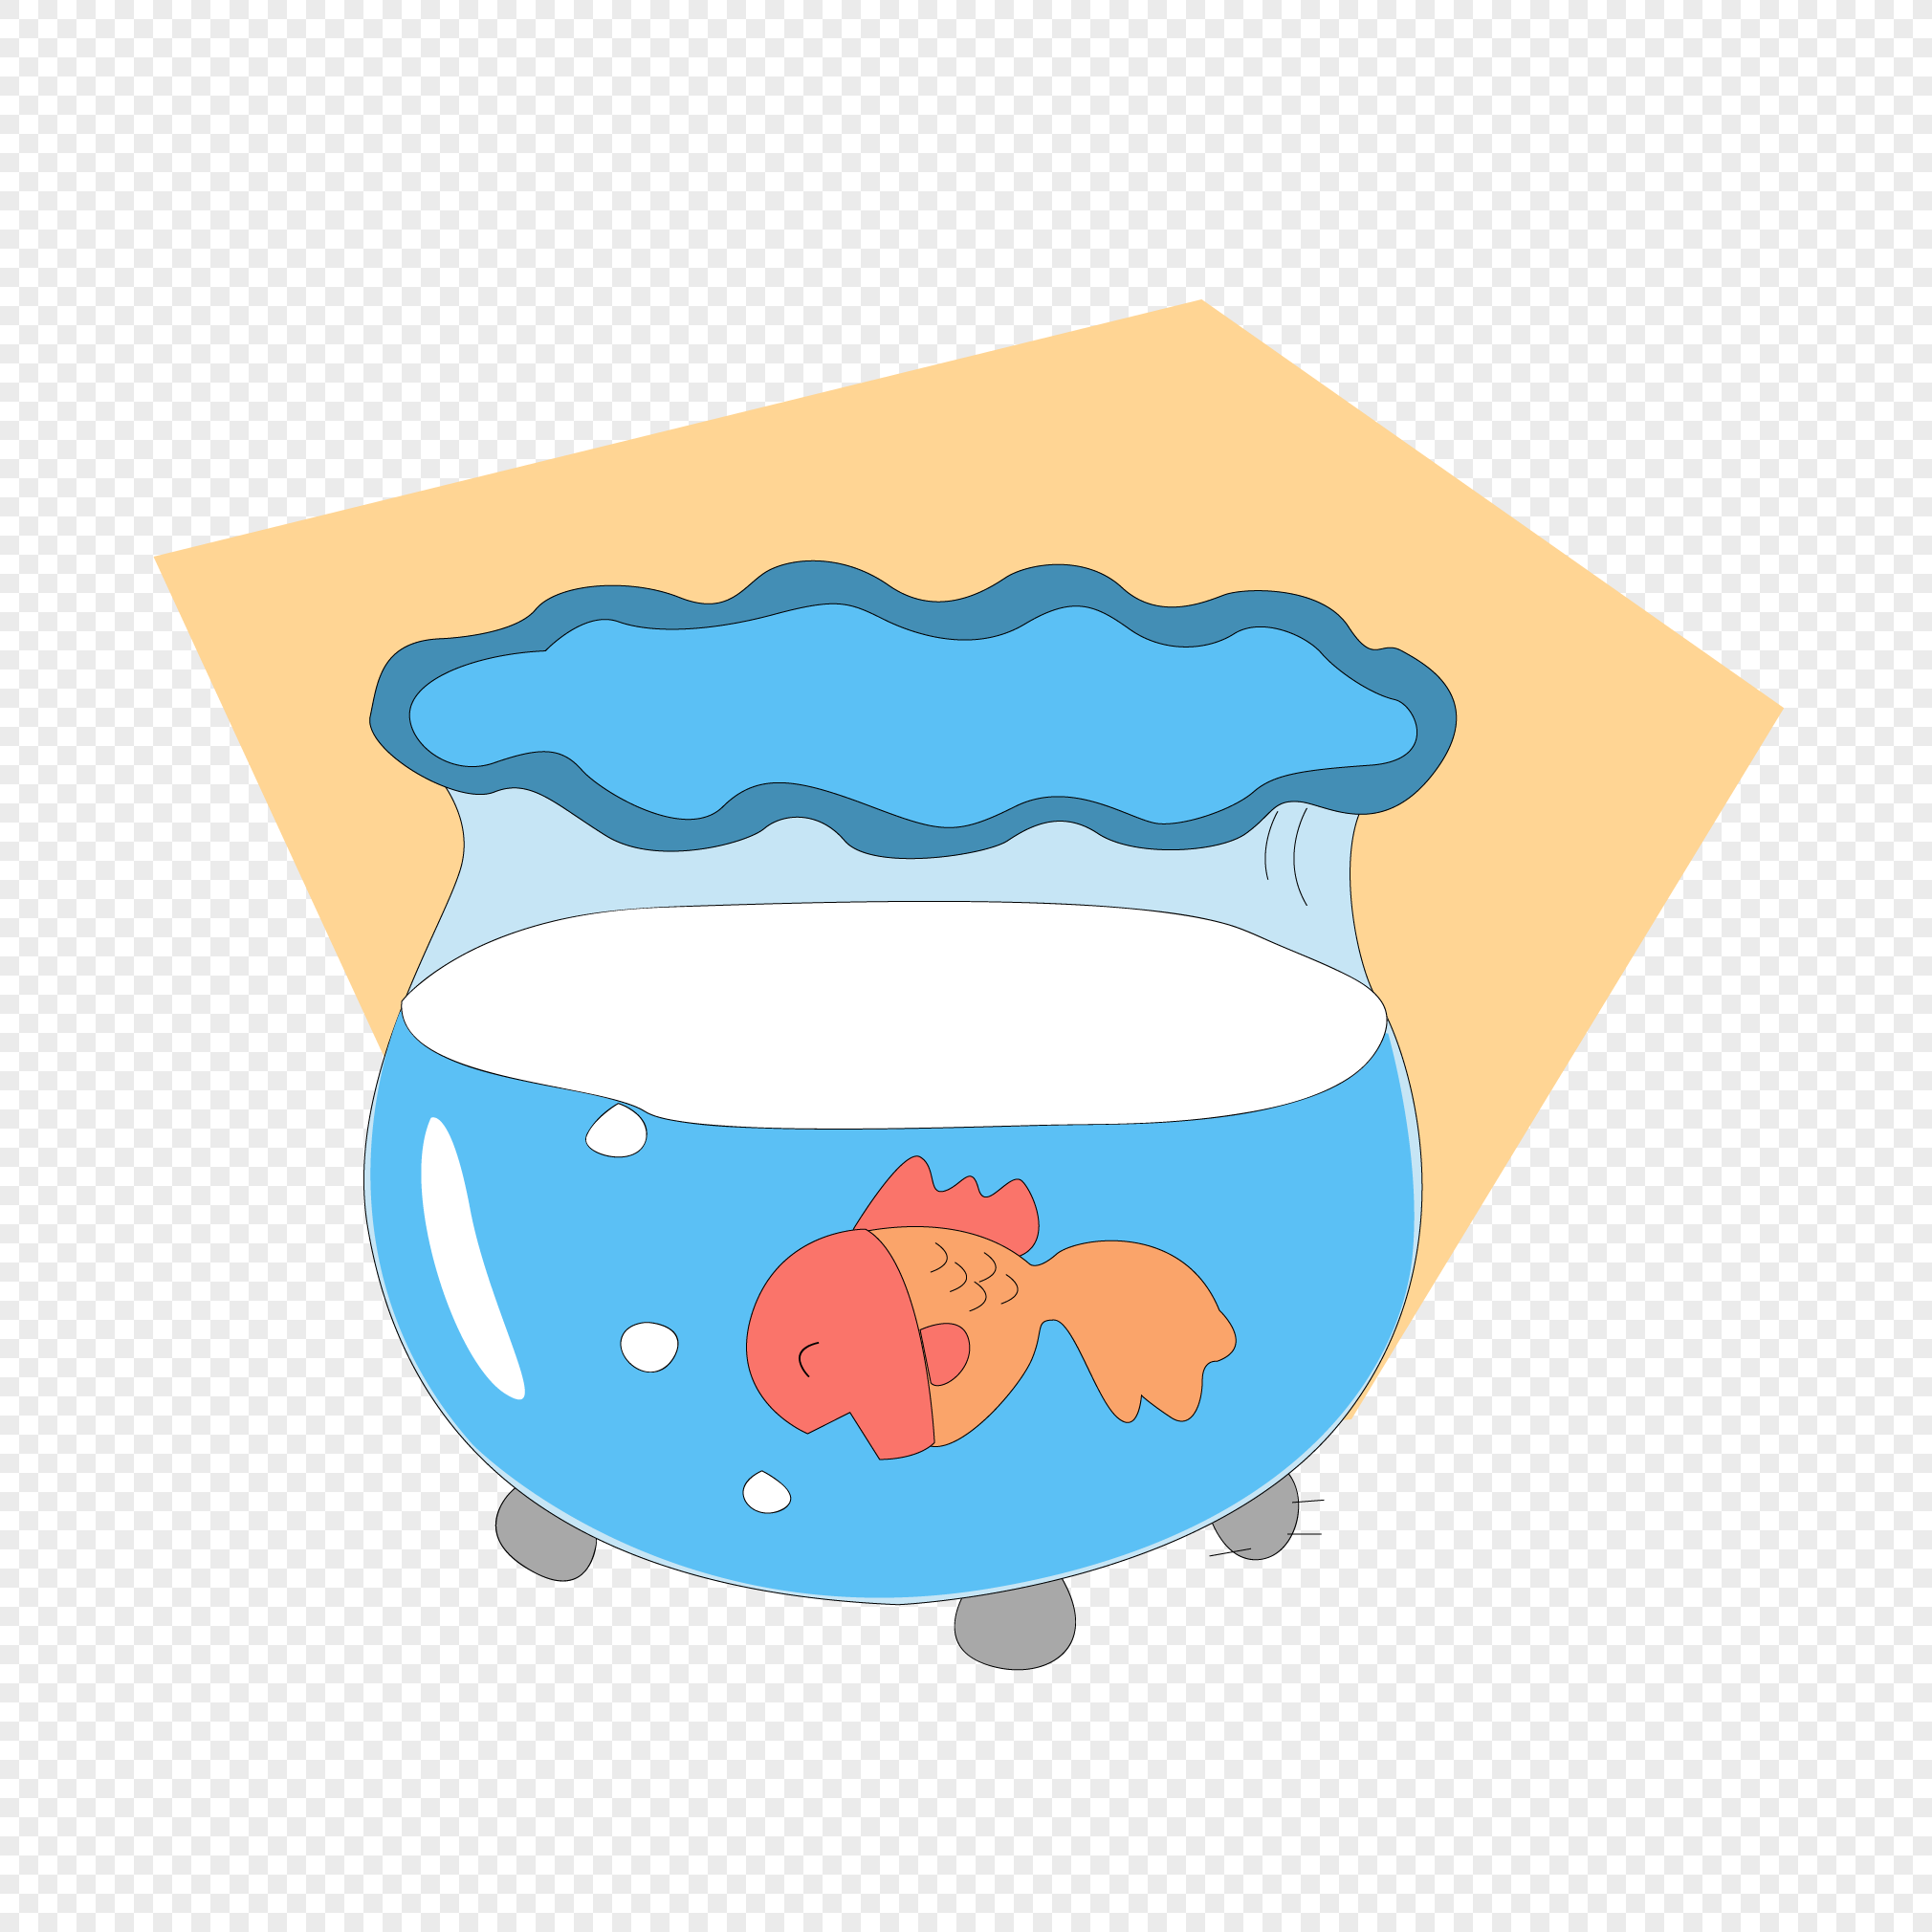 Cartoon Fish Tank Design Material Png Image Picture Free Download